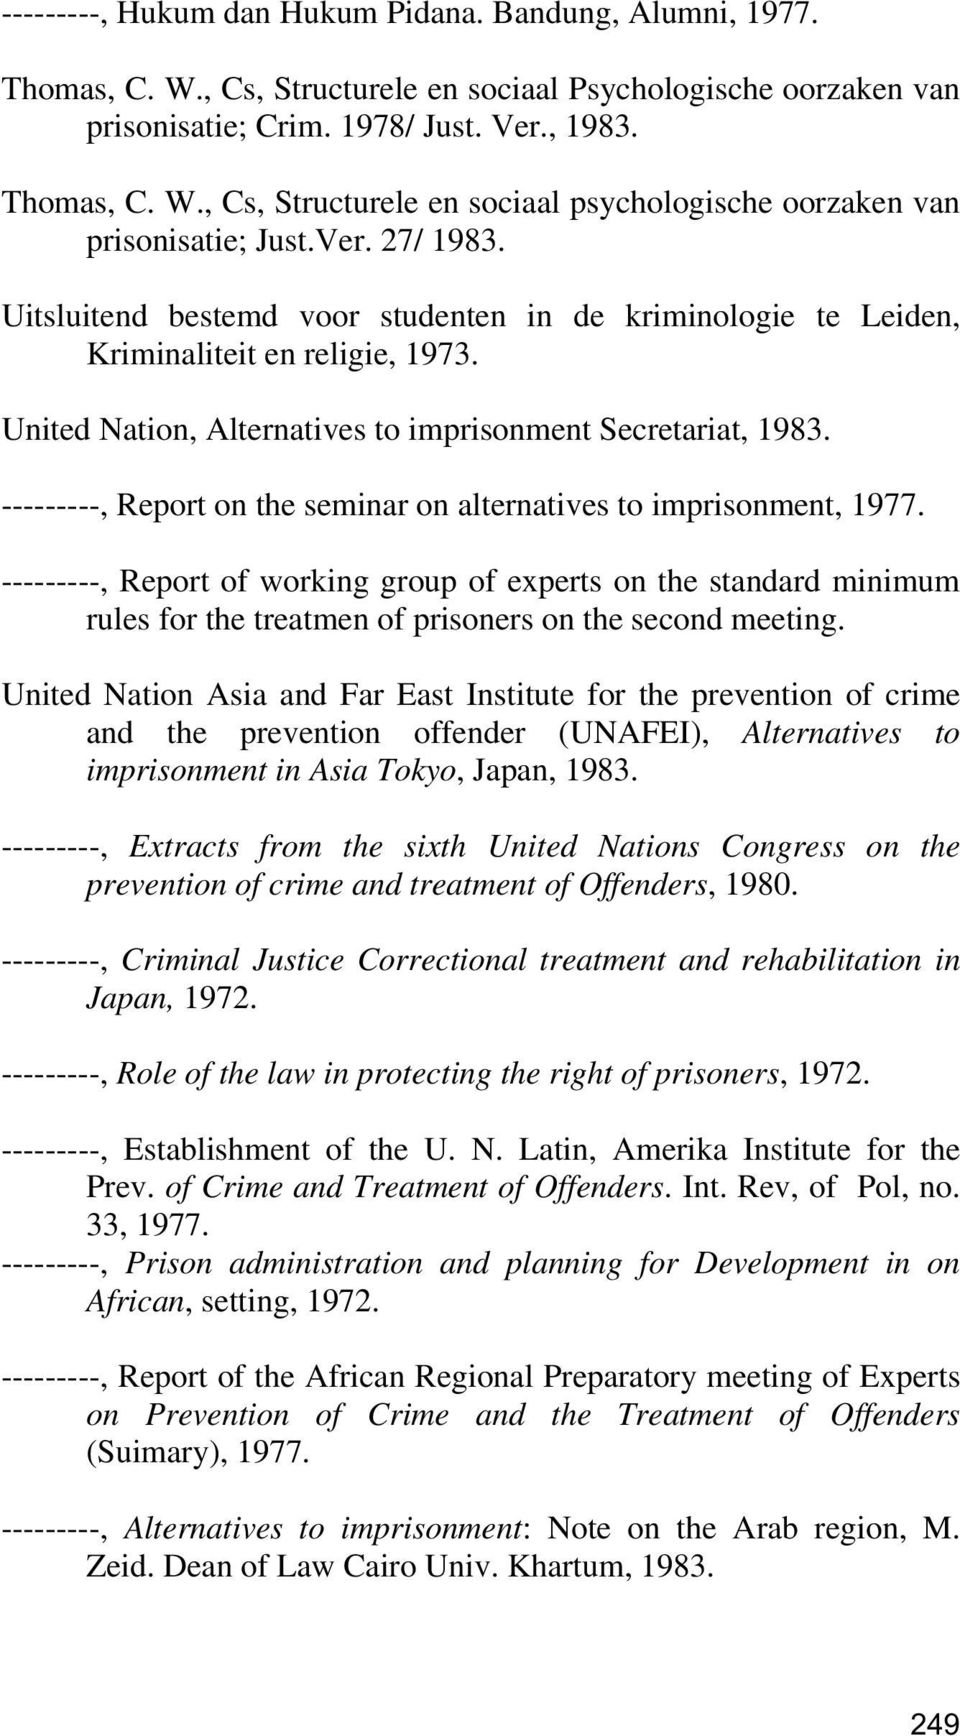 ---------, Report on the seminar on alternatives to imprisonment, 1977. ---------, Report of working group of experts on the standard minimum rules for the treatmen of prisoners on the second meeting.